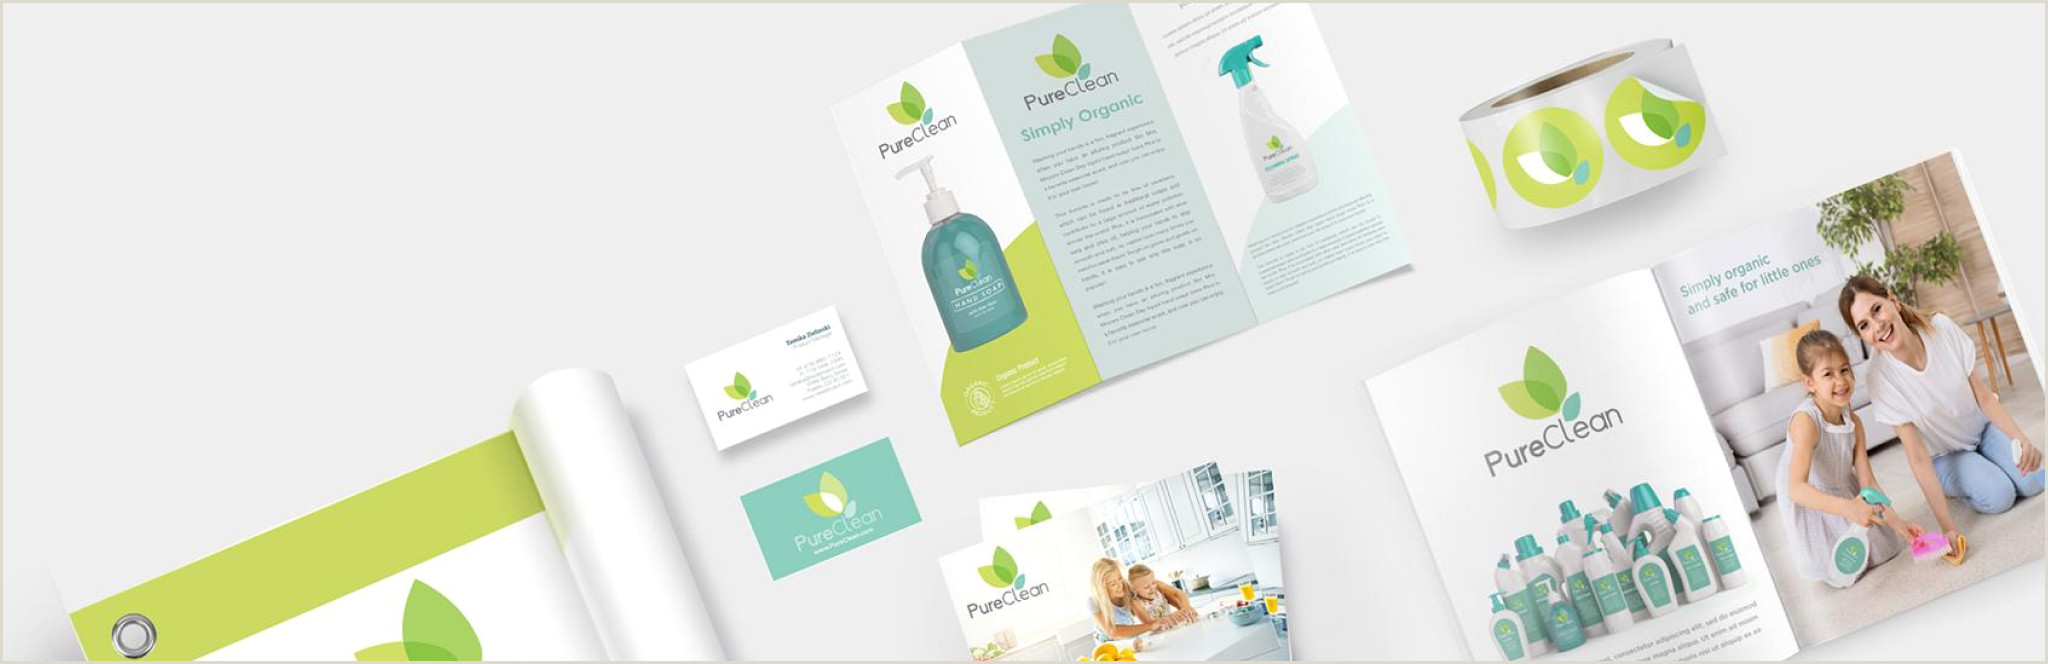 Print Unique Discount Codes On Business Cards Printplace High Quality Line Printing Services